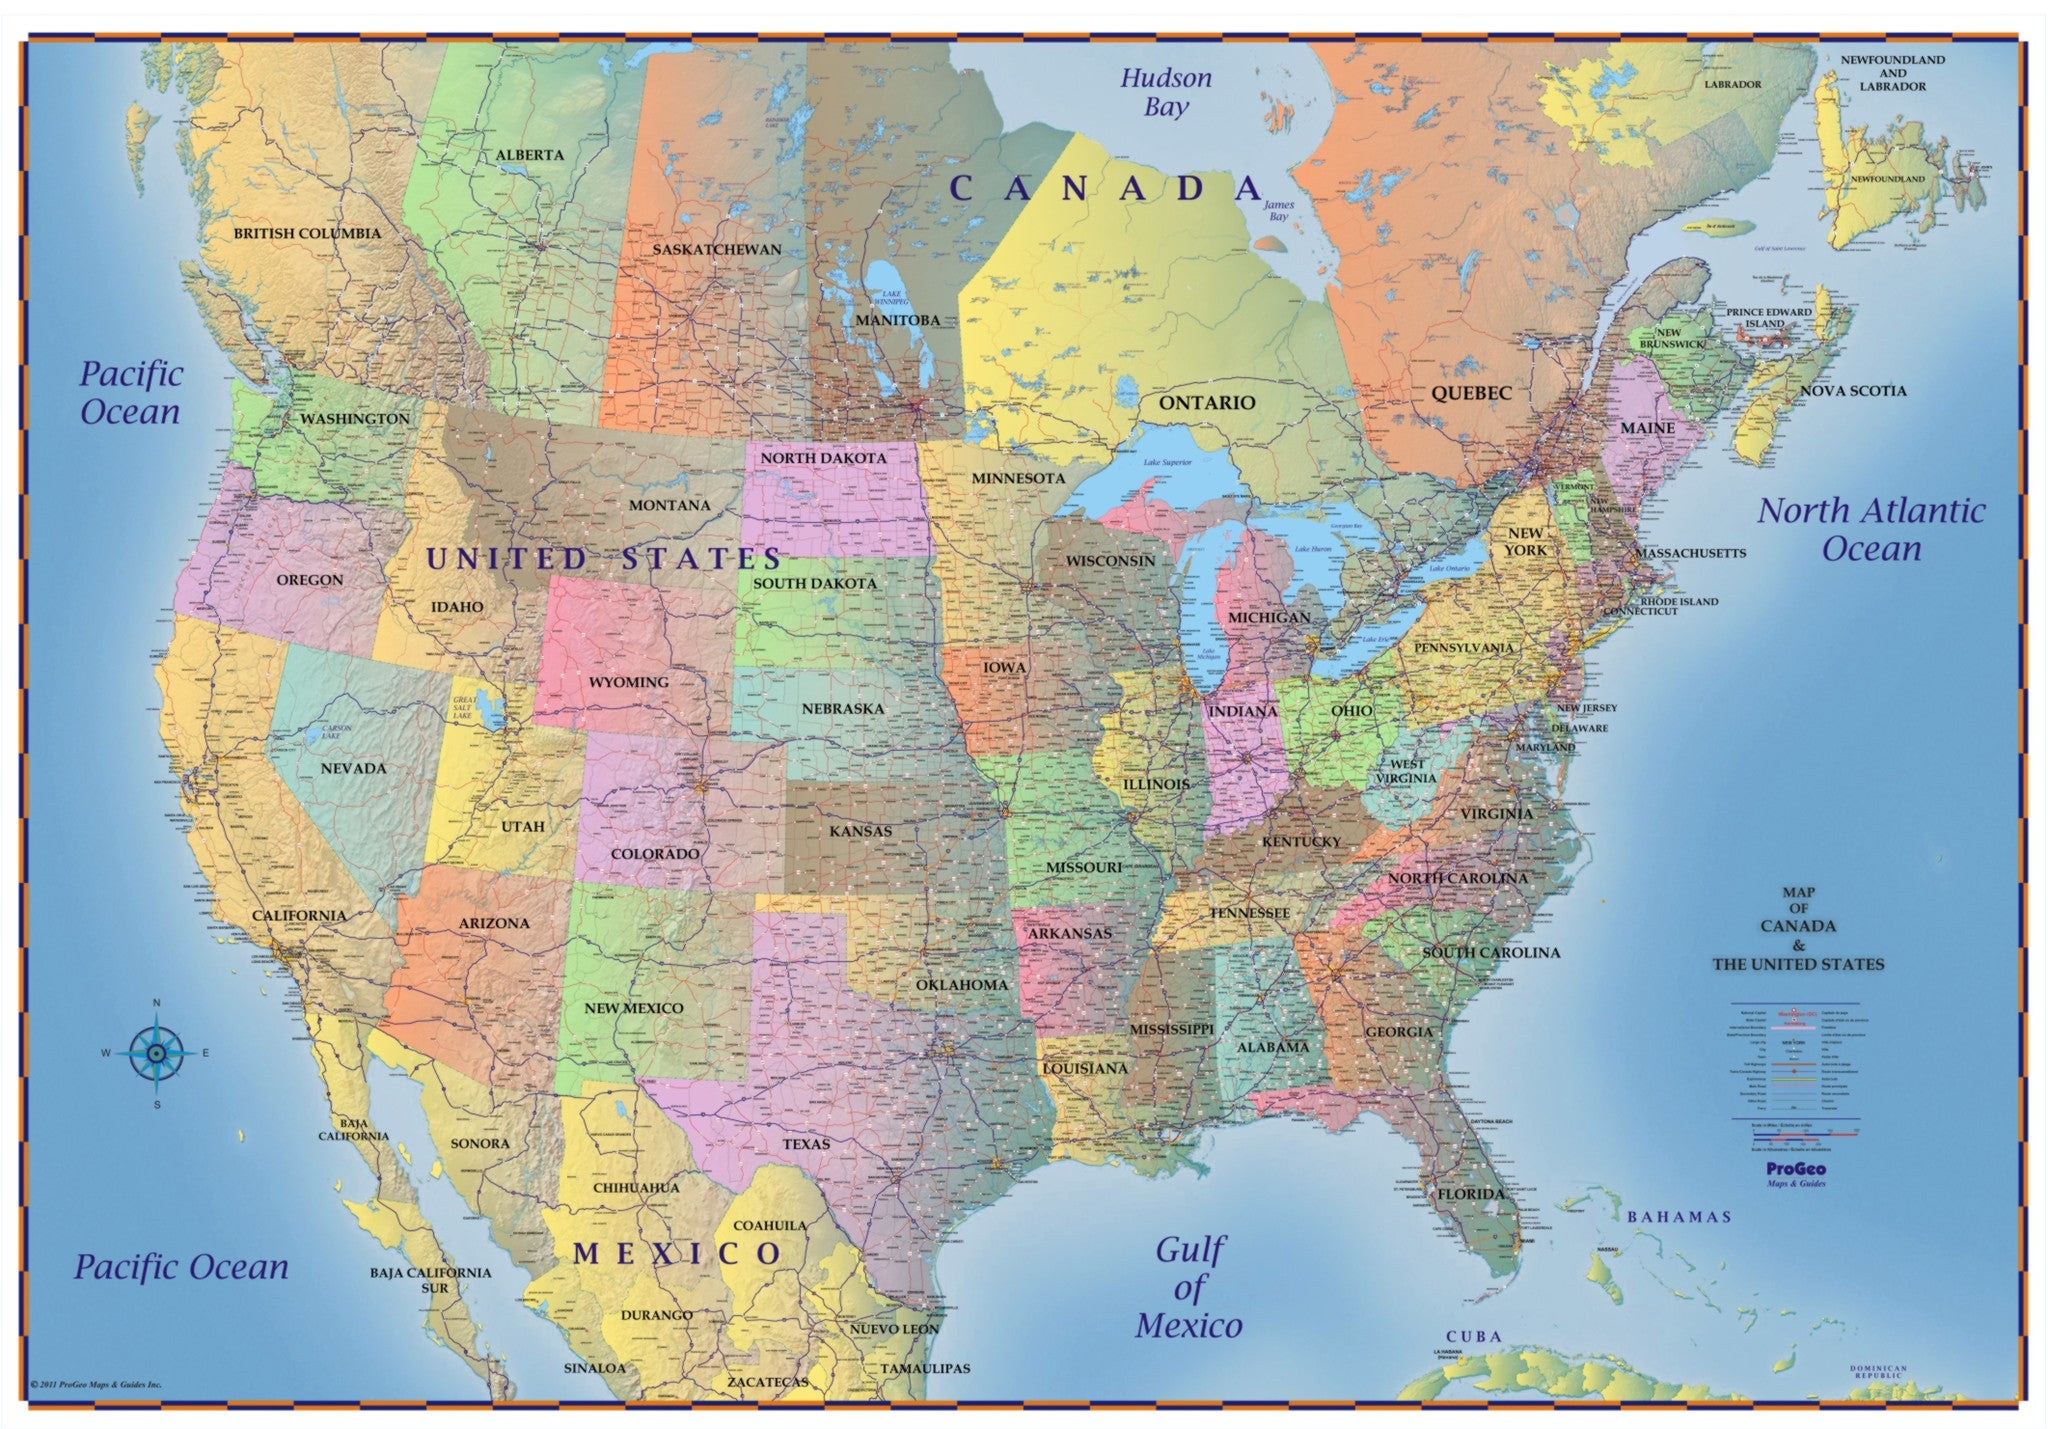 A Map Of United States And Canada Wall HD - Google maps canada us border